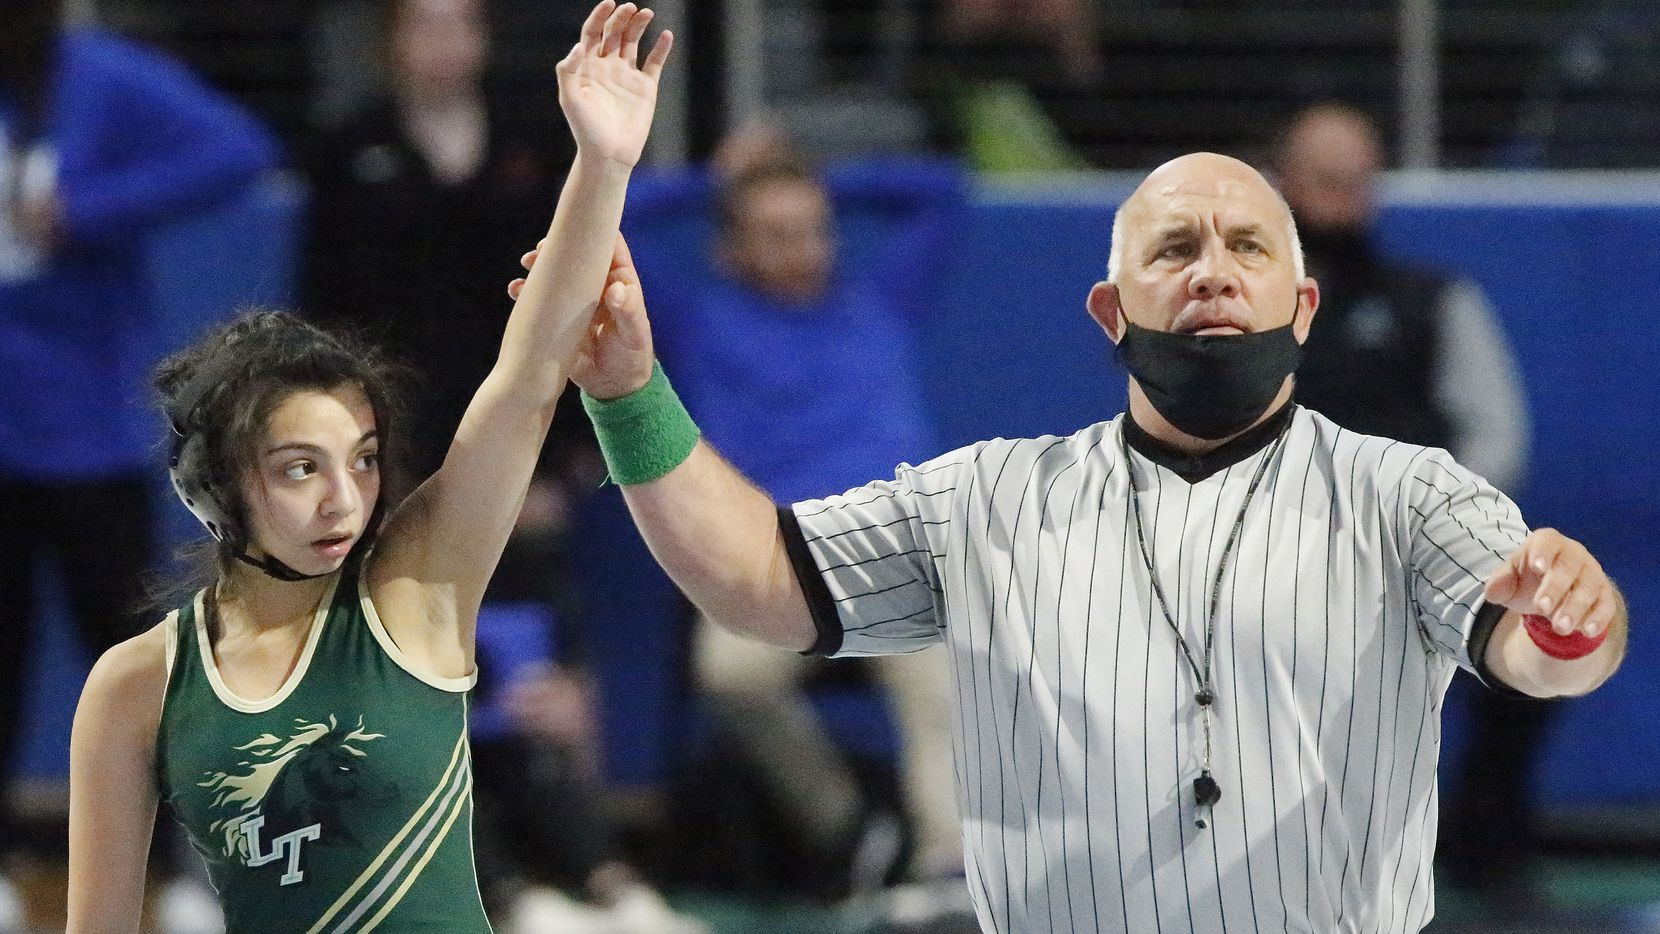 Janaya Baeza (left) of Lebanon Trail High School is declared the winner of her match during the UIL Region II wrestling meet held at Rockhill High School in Frisco on Saturday, April 17, 2021.